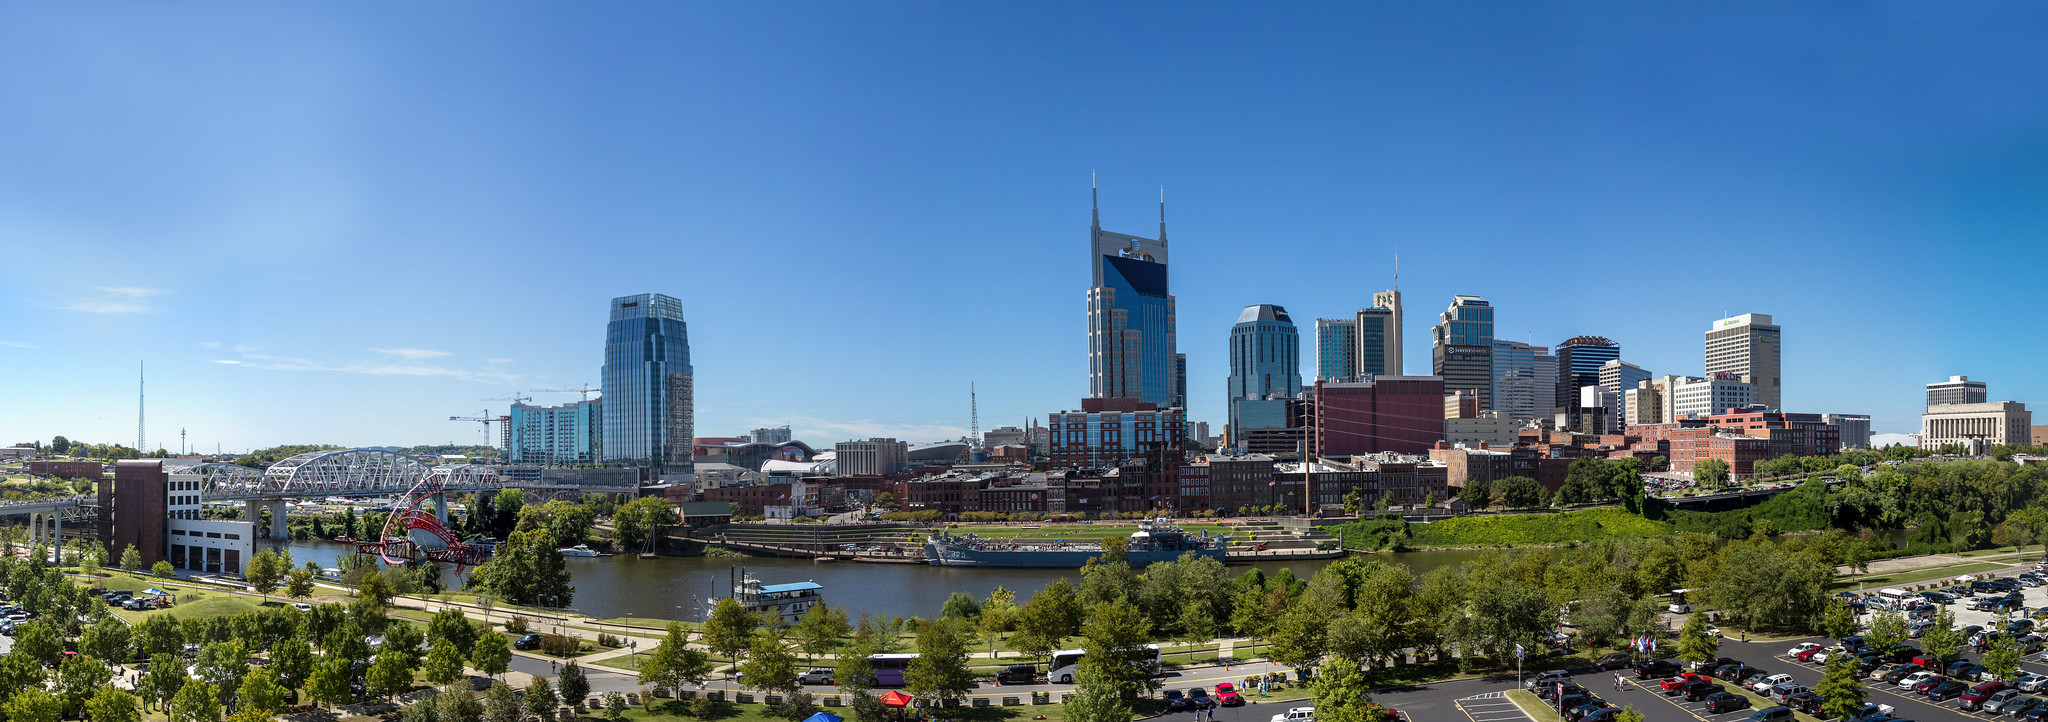 Nashville Was Just Named One Of The Healthiest Cities To Live In 2020